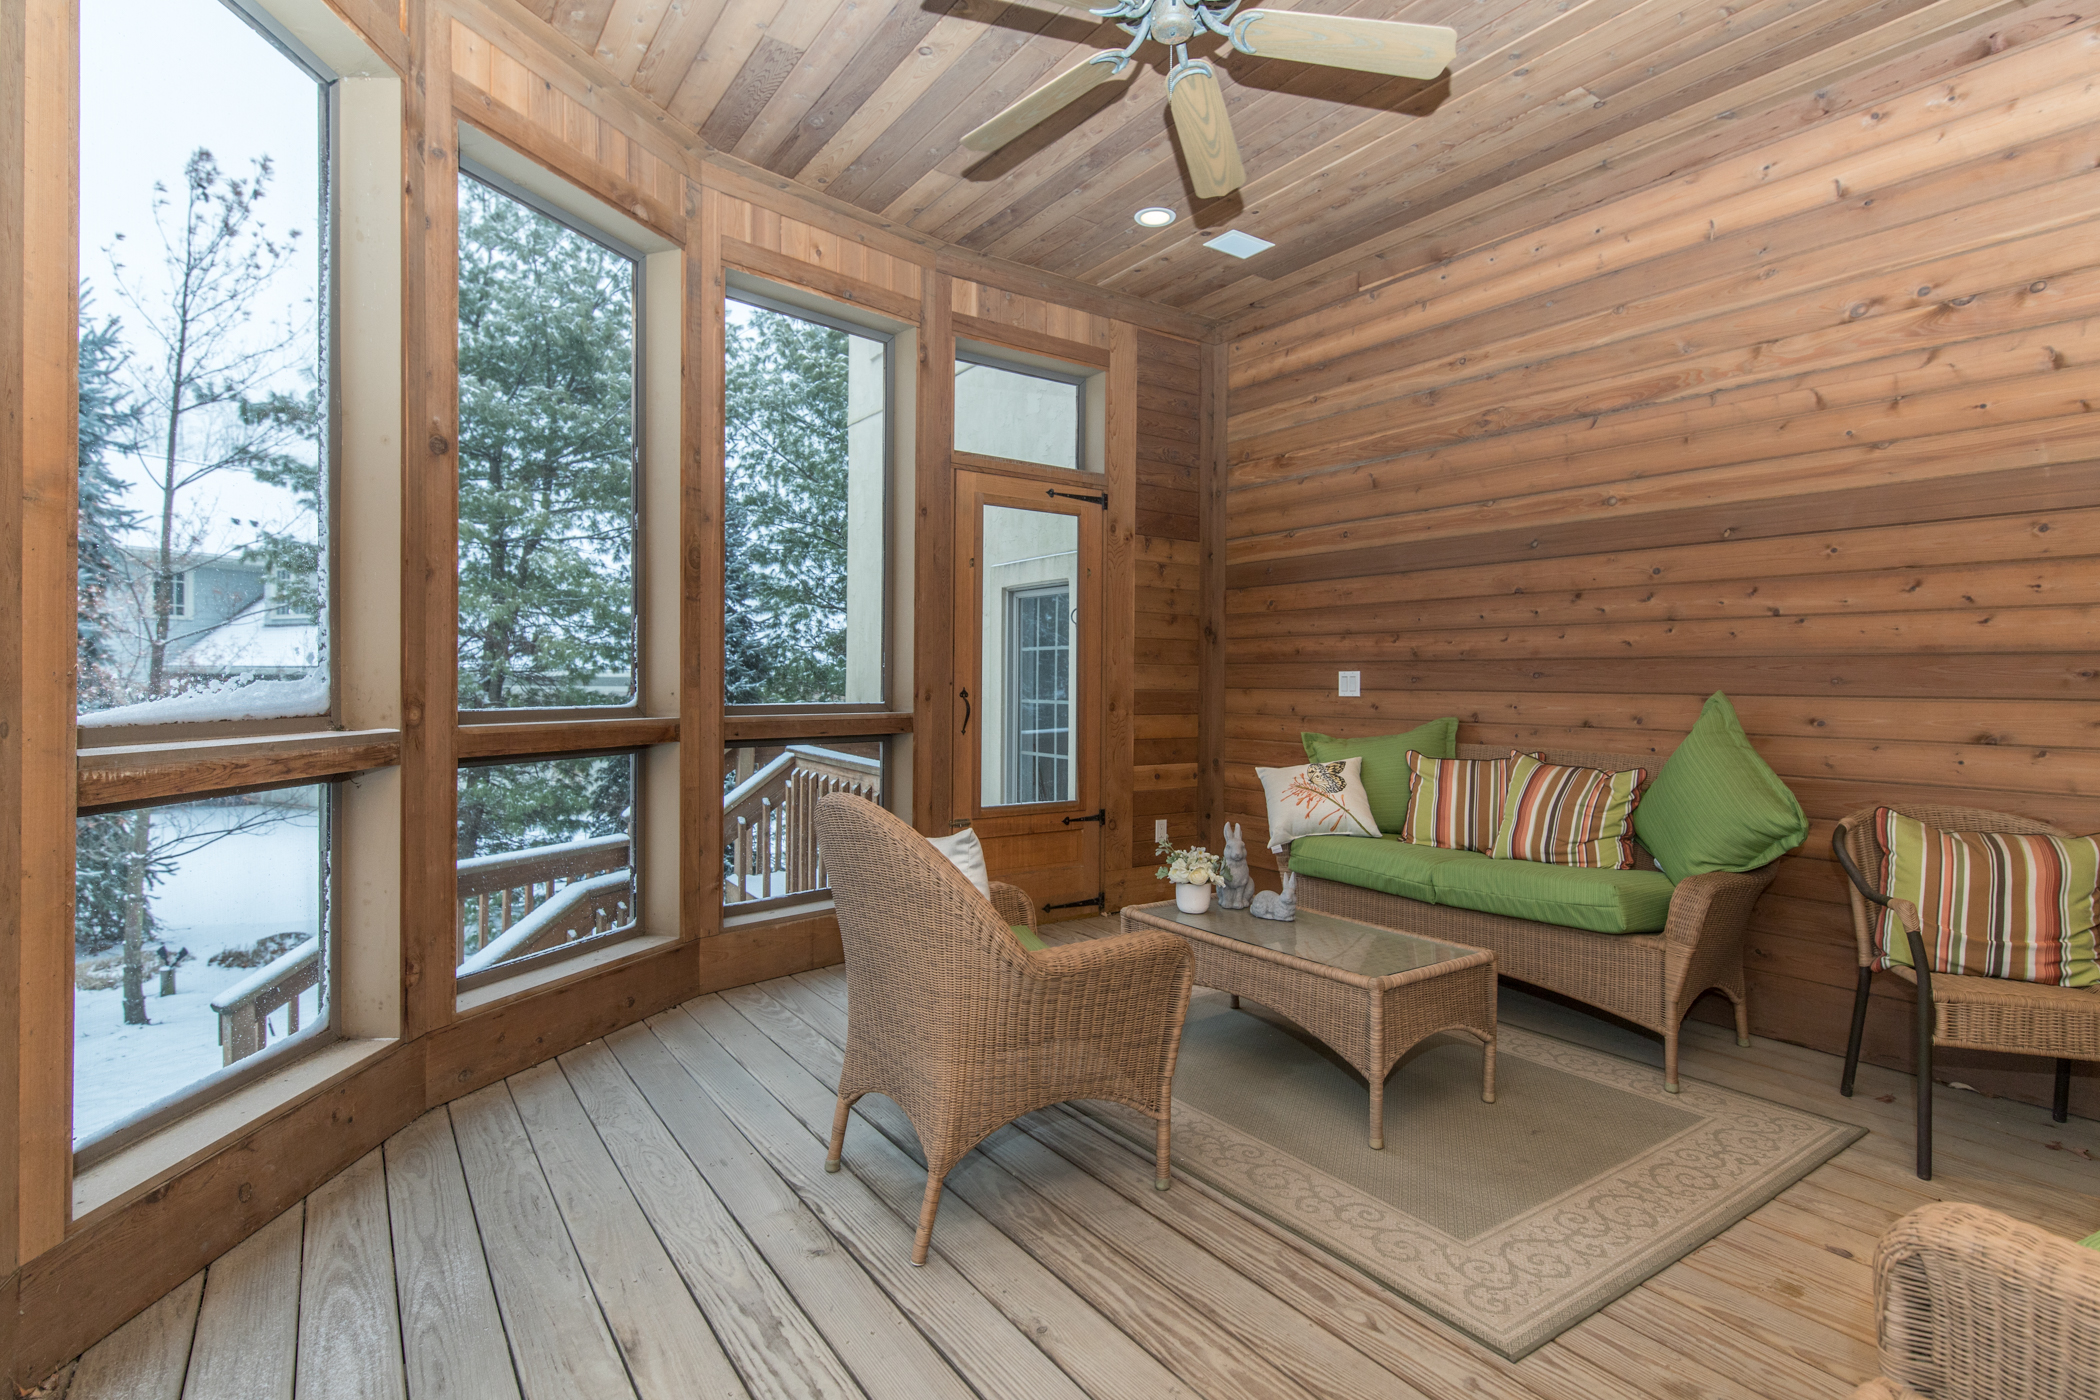 Screened in porch off of family room